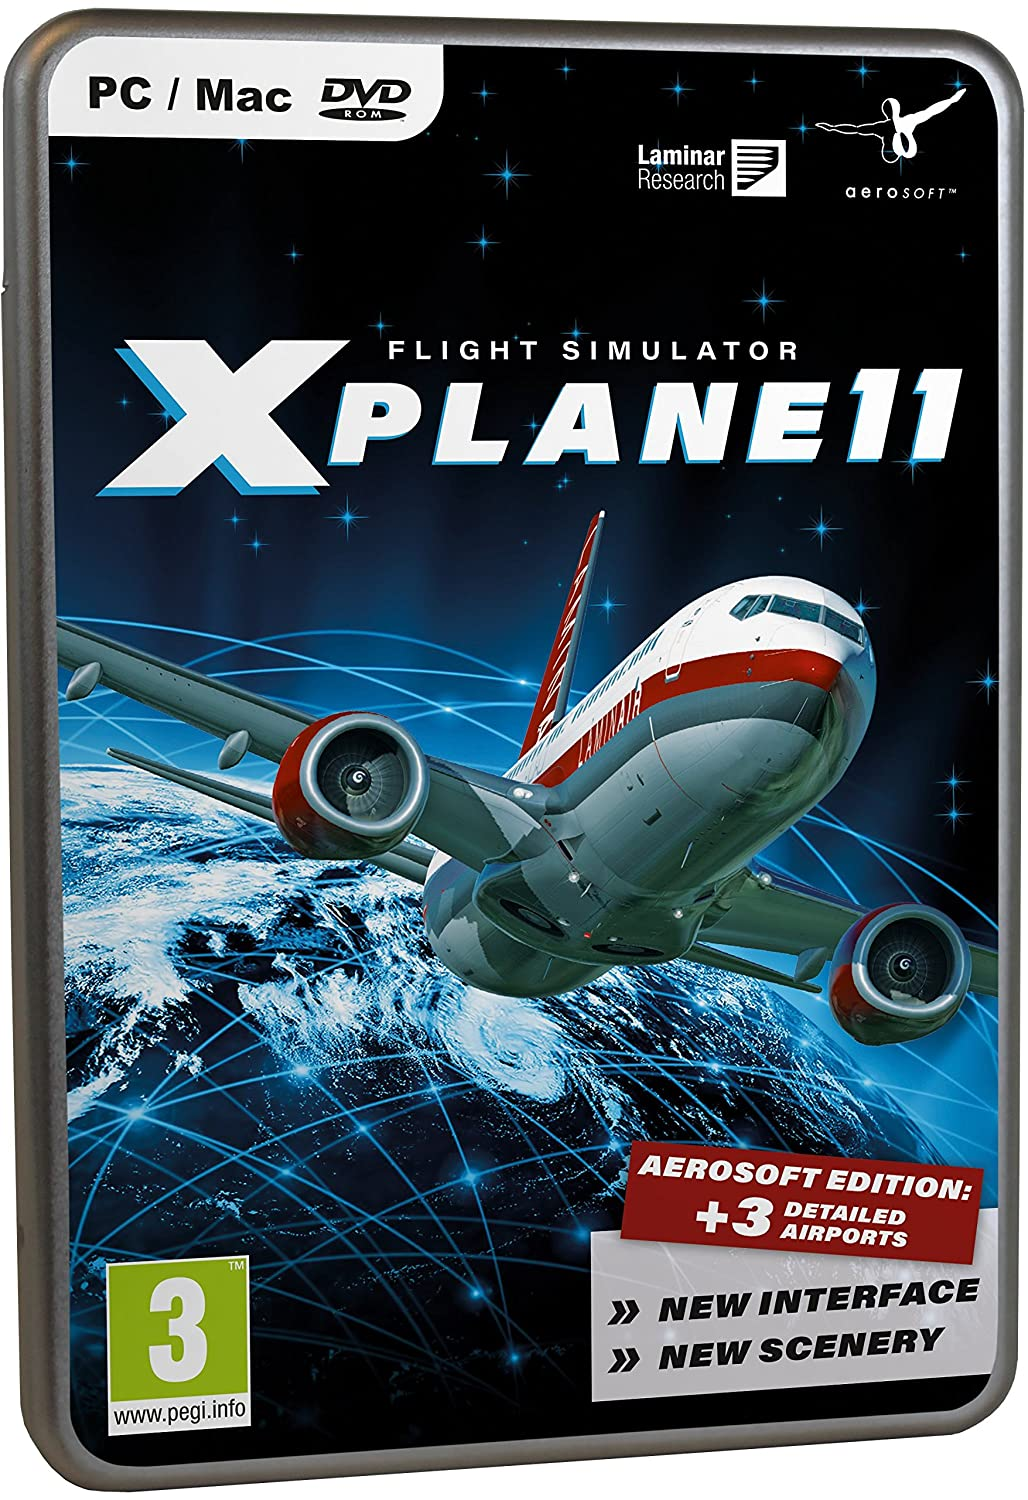 Flight Simulator X-Plane 11 (Mac/PC): Amazon co uk: PC